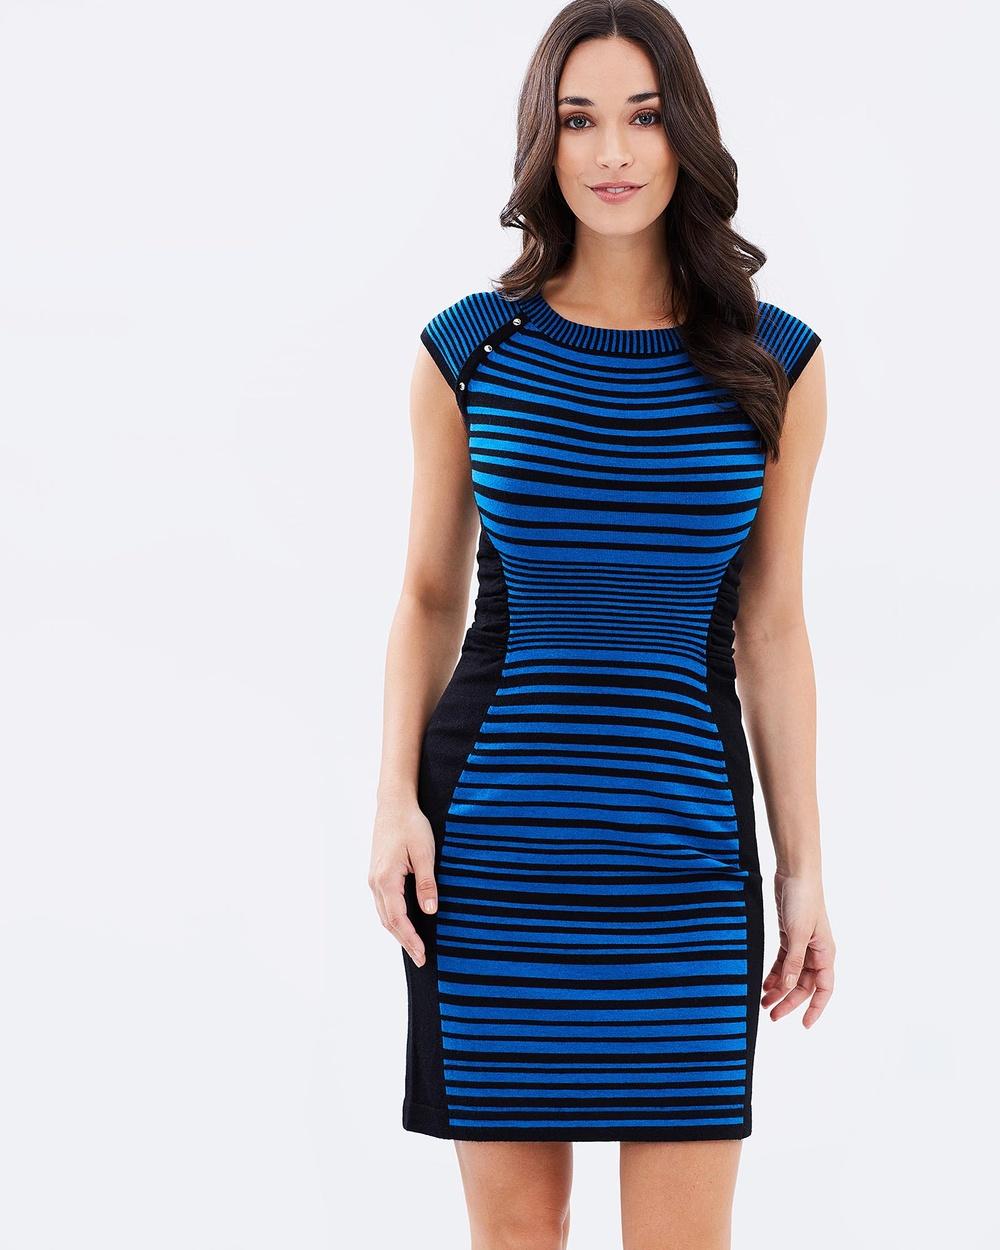 Privilege Knit Dress Bodycon Dresses Blue & Black Knit Dress